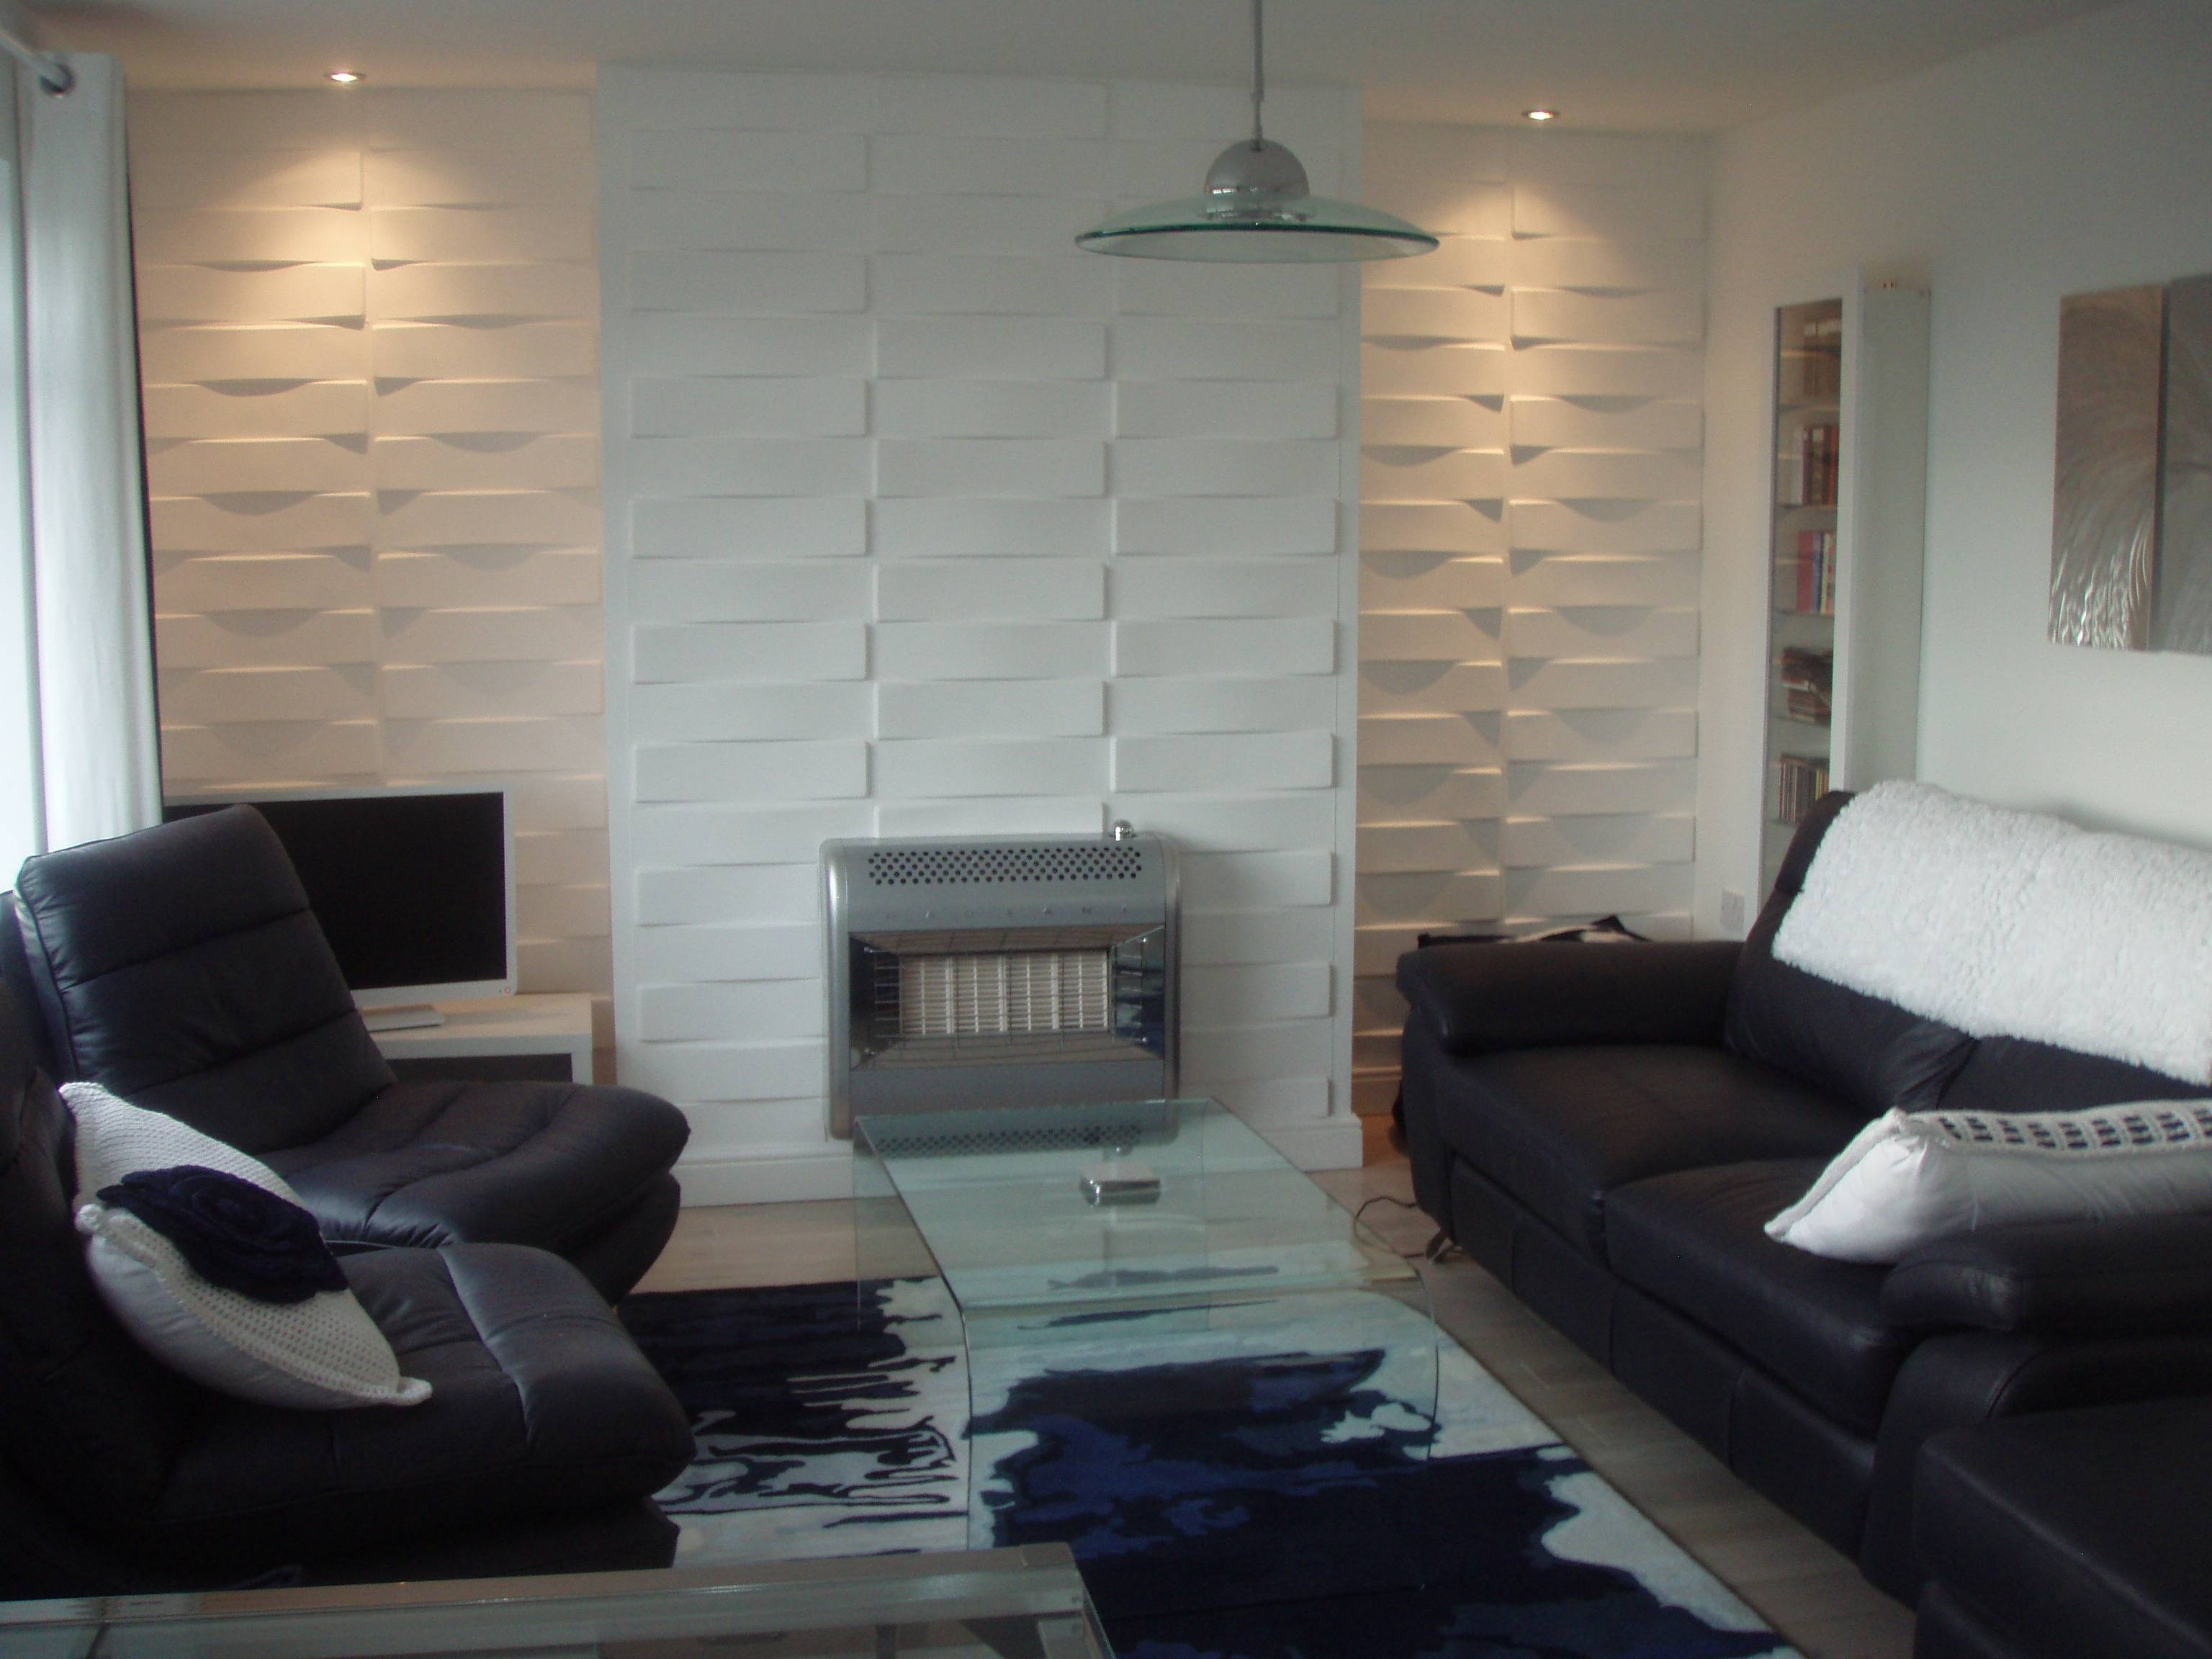 3D Wall Panels | Daisy Decorating & Design With Regard To Recent Painting 3D Wall Panels (View 3 of 20)